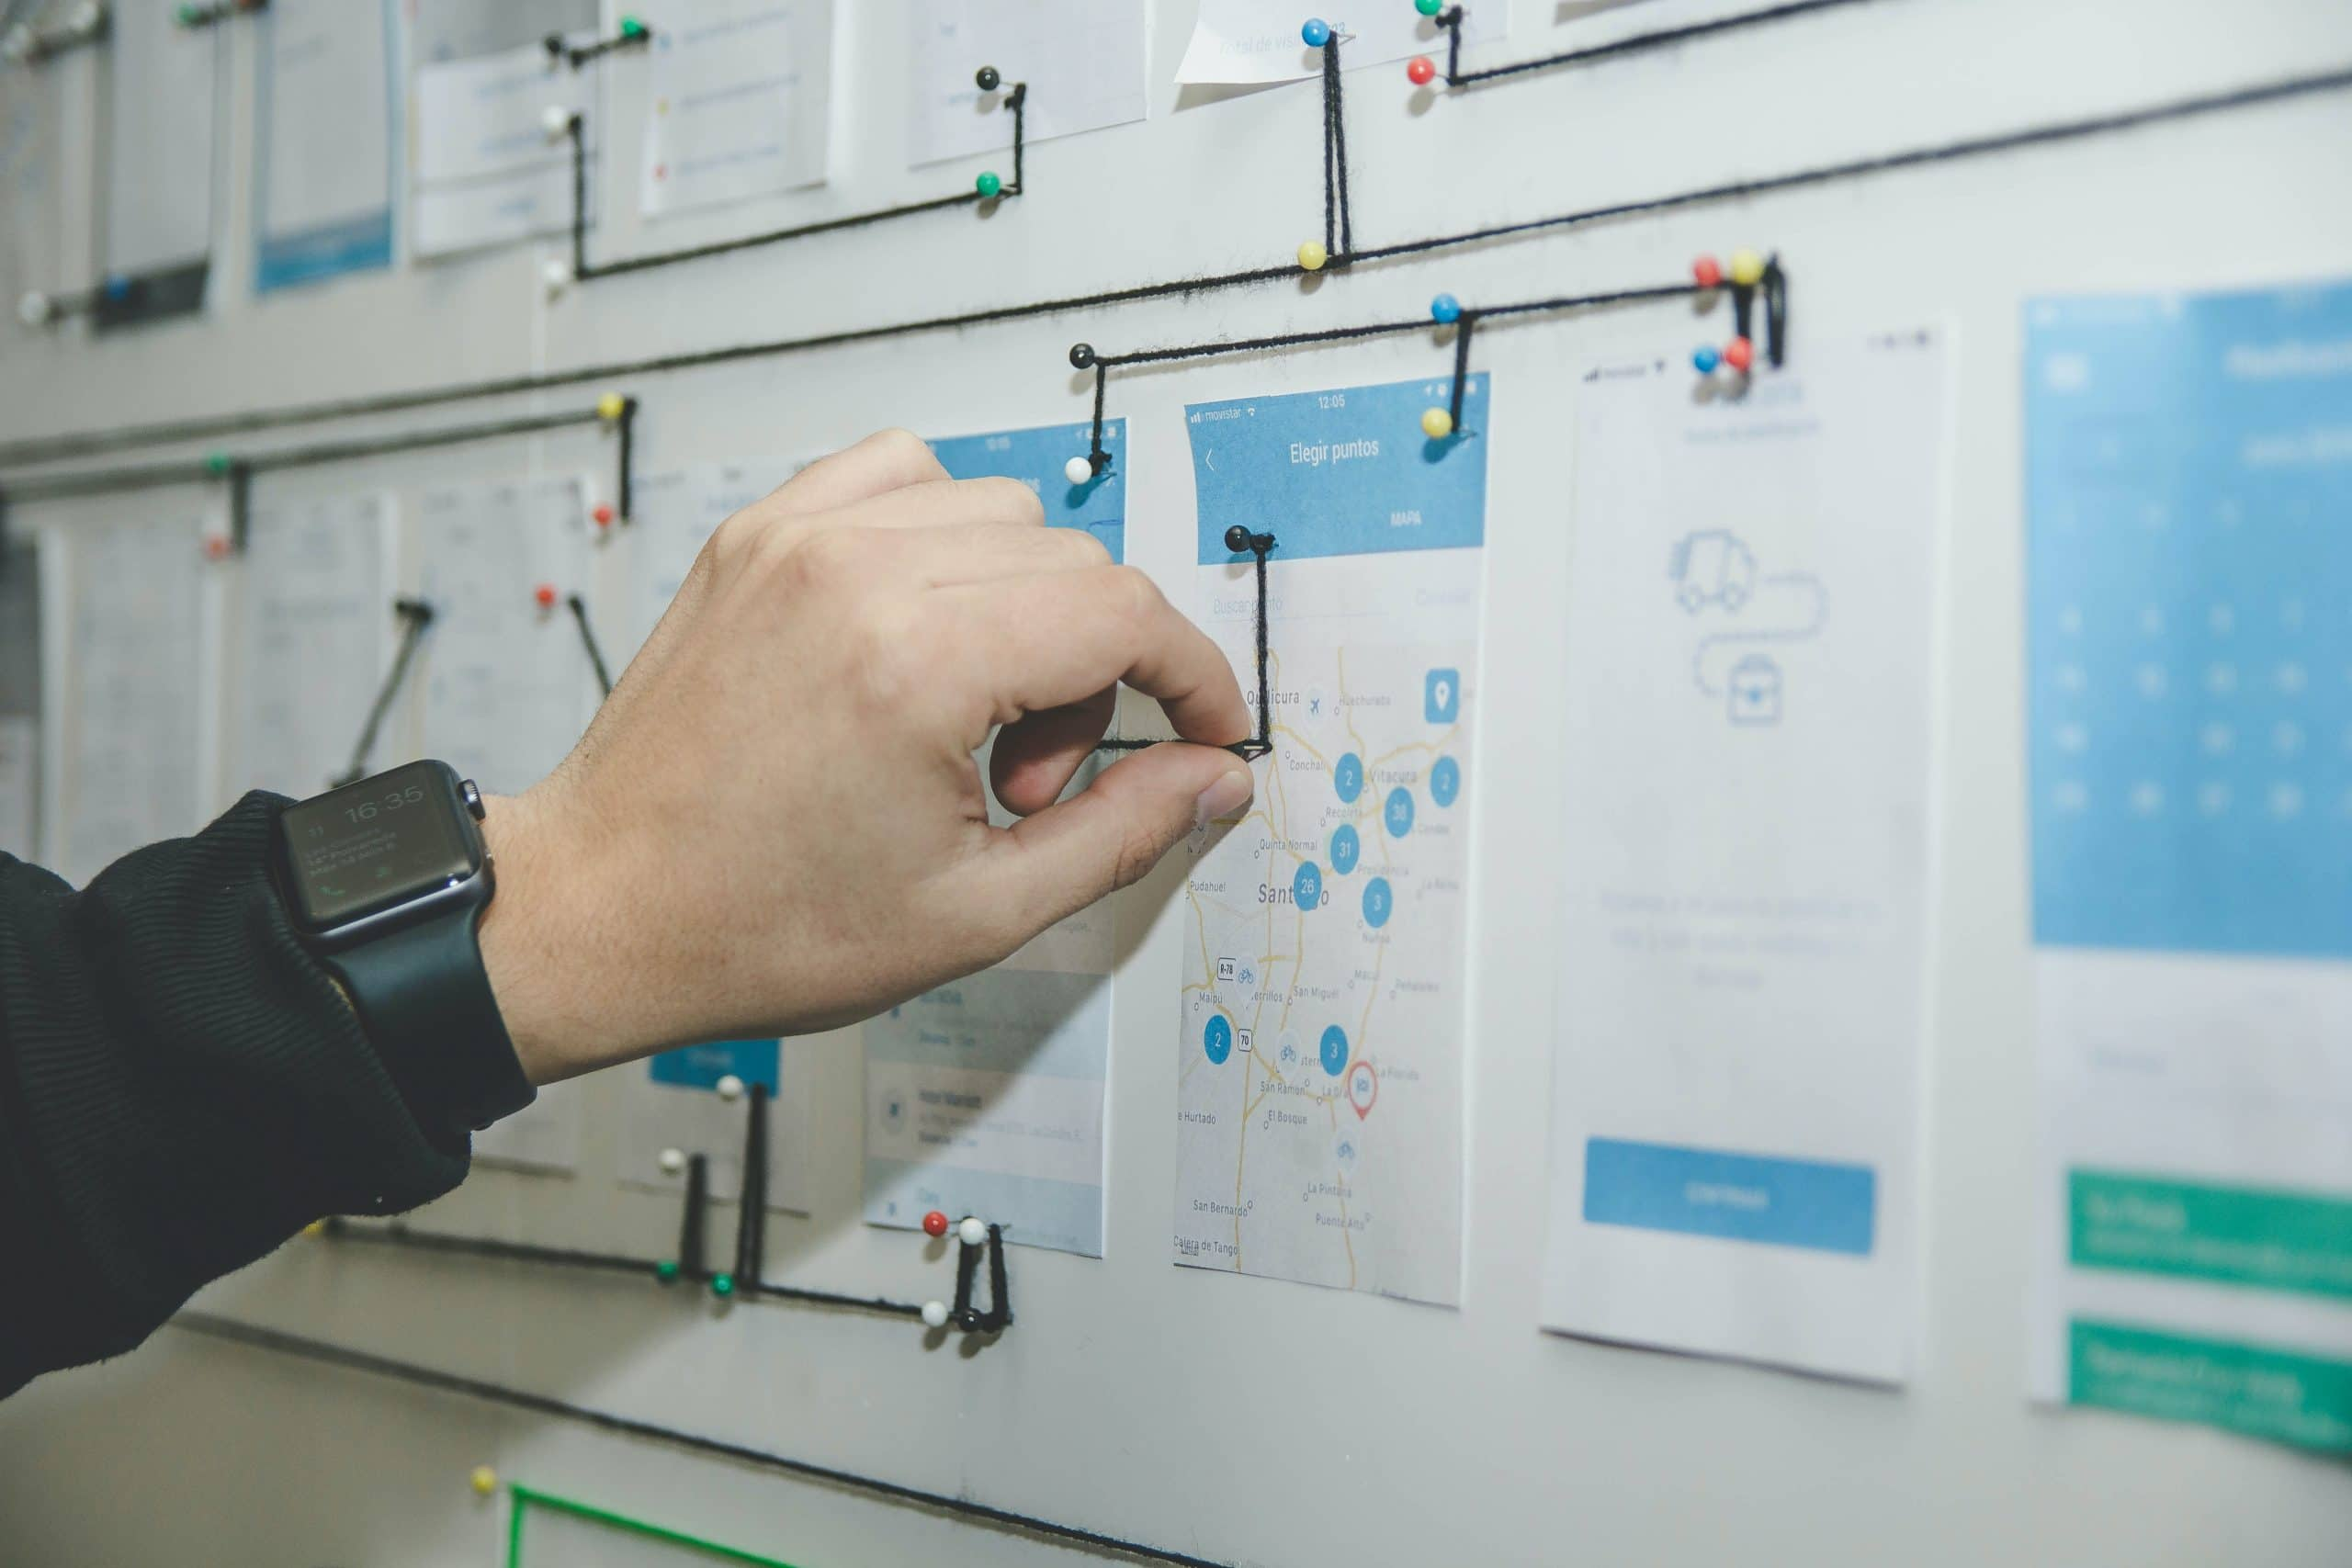 Field Service Management: 4 Key Things To Look For In A Software Solution-image3